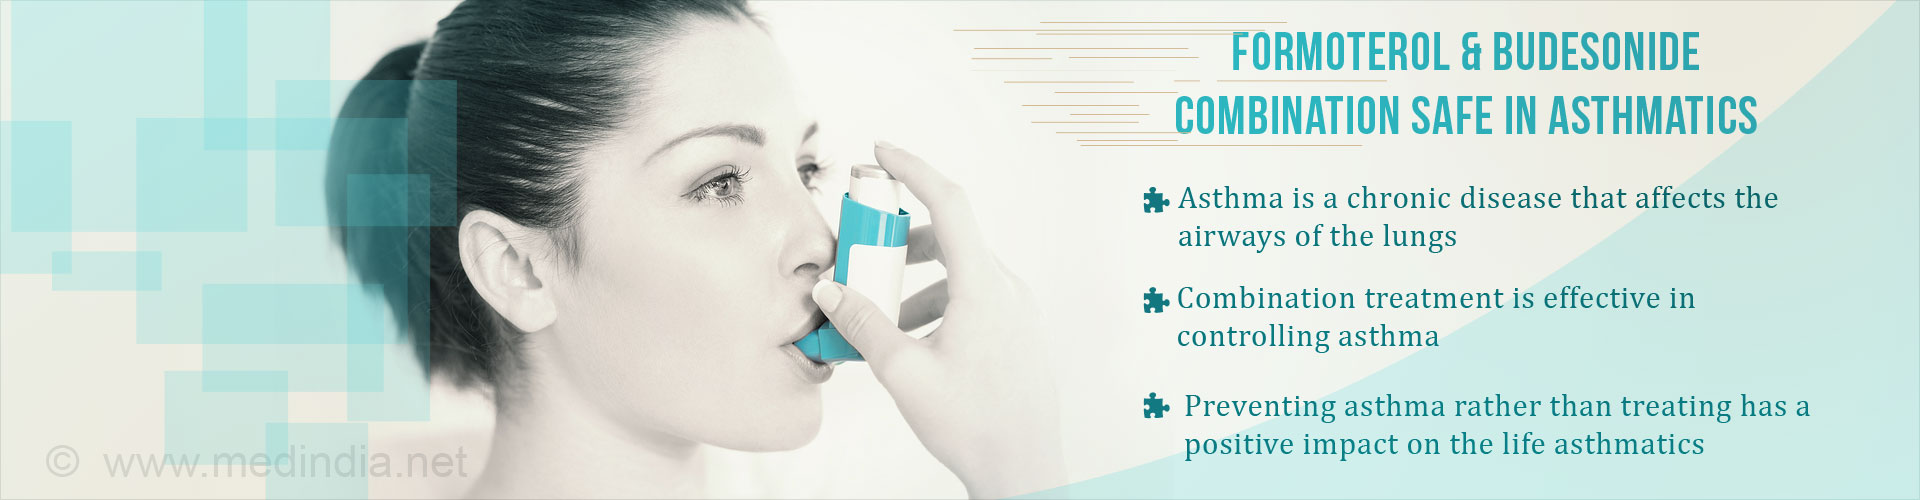 Formoterol and Budesonide Combination Safe in Asthma Patients